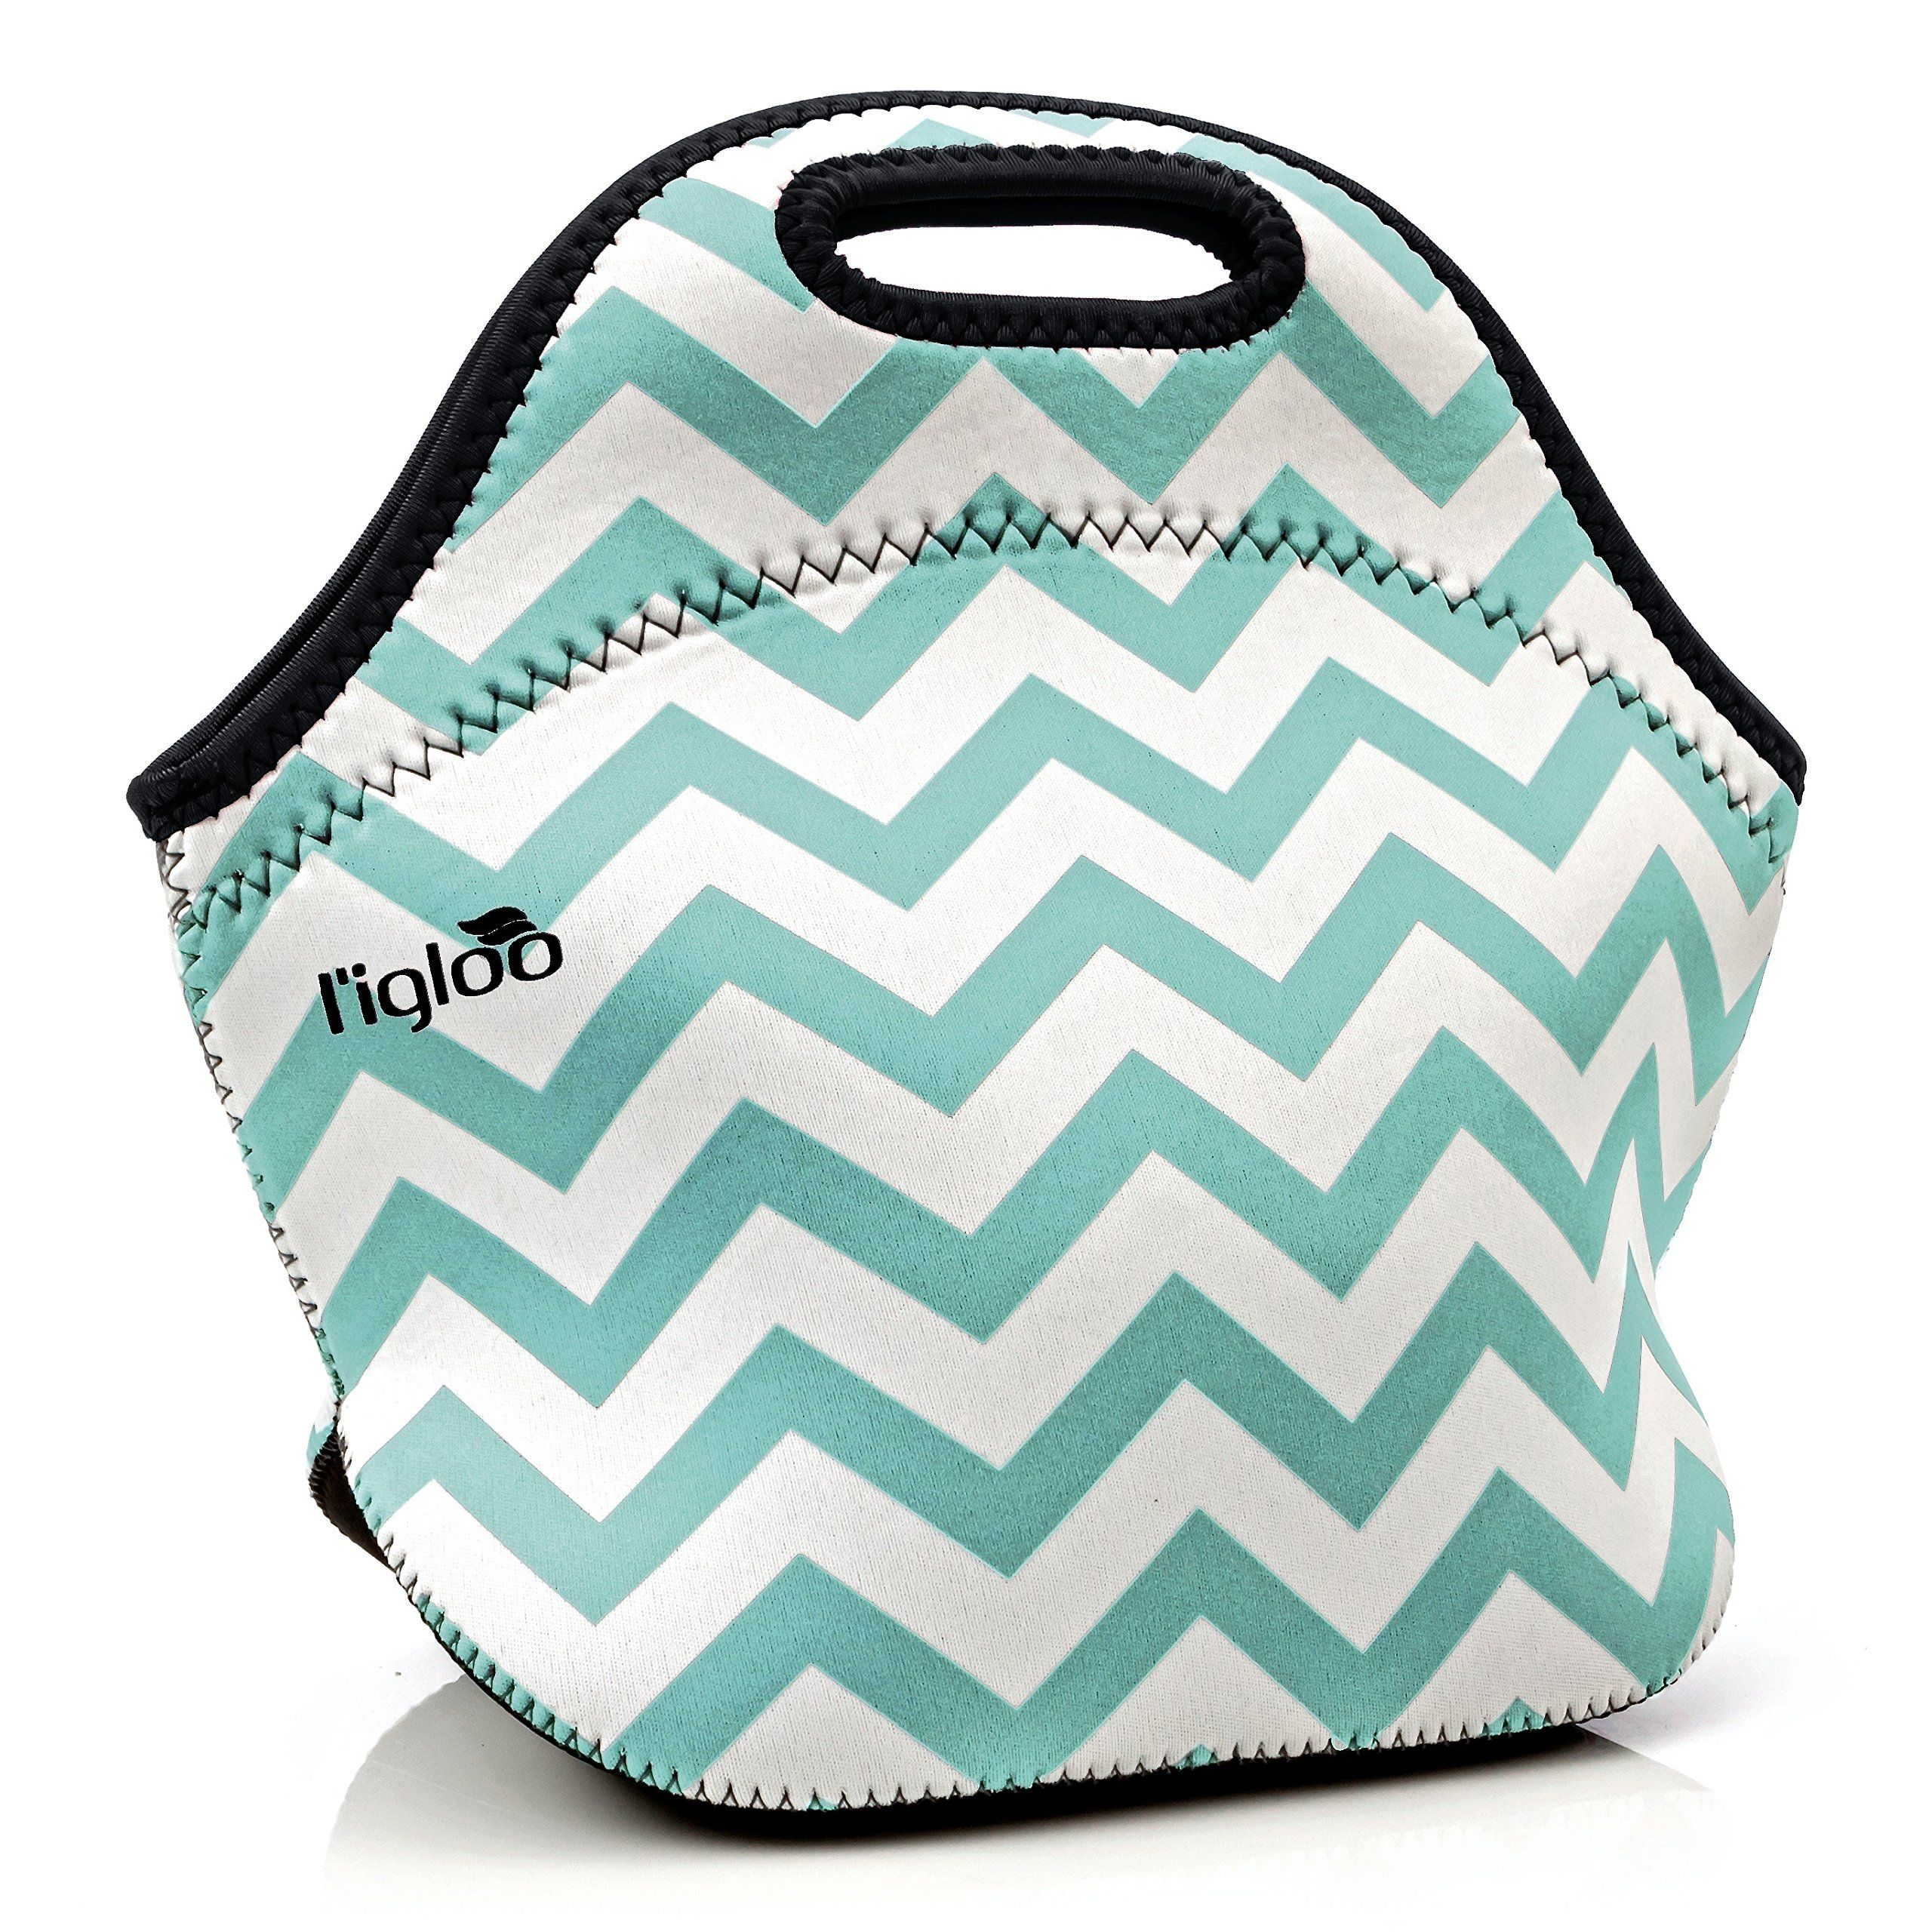 L Igloo Deluxe Neoprene Insulated Lunch Bag Extra Thick Box Tote Heavy Duty Zipper